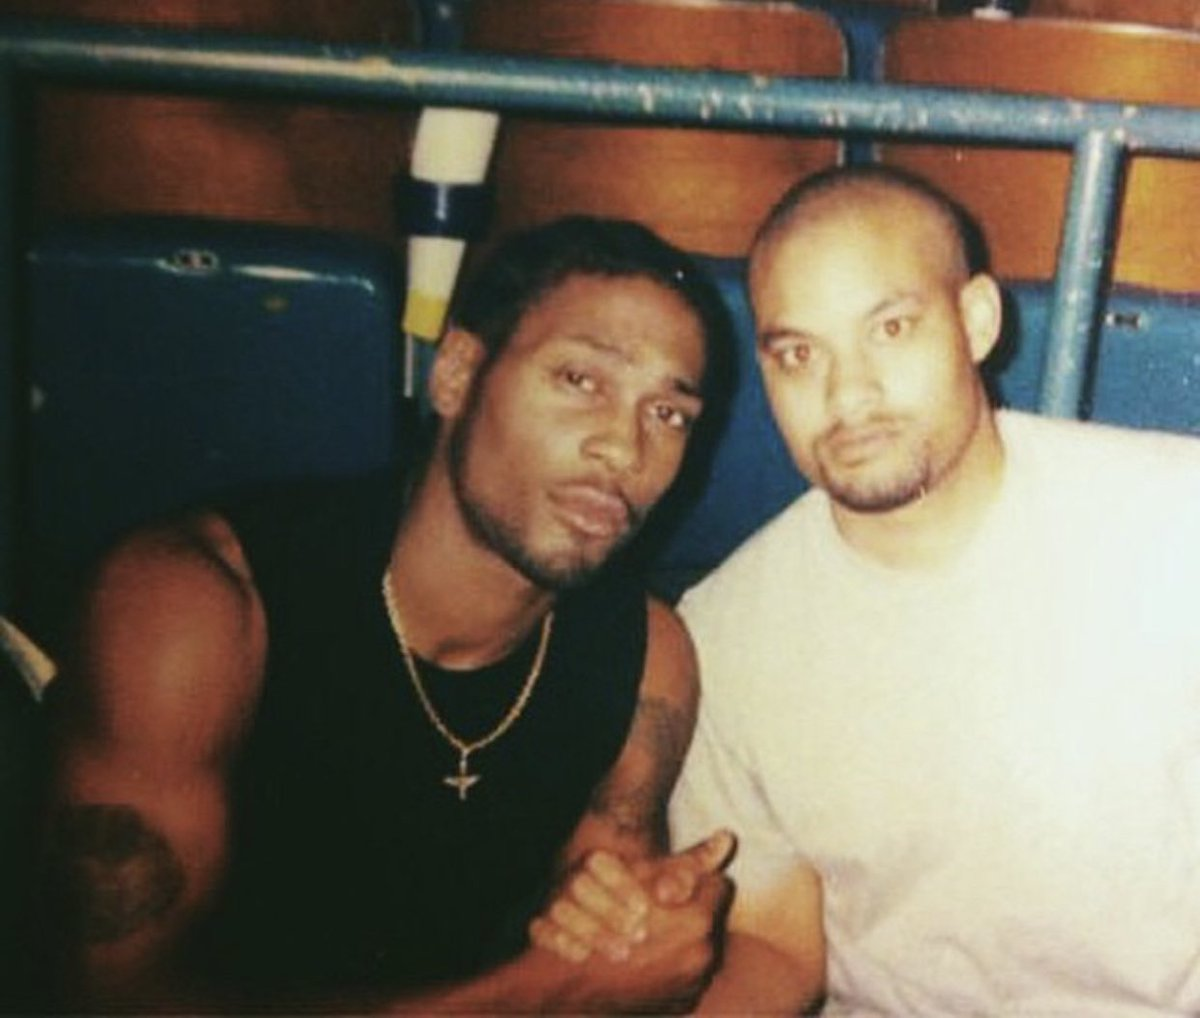 Me and the good brother Michael Archer during soundcheck at the Bronco Bowl in Dallas on the Voodoo Tour. Youth and young manhood in the flesh. #VERZUZ